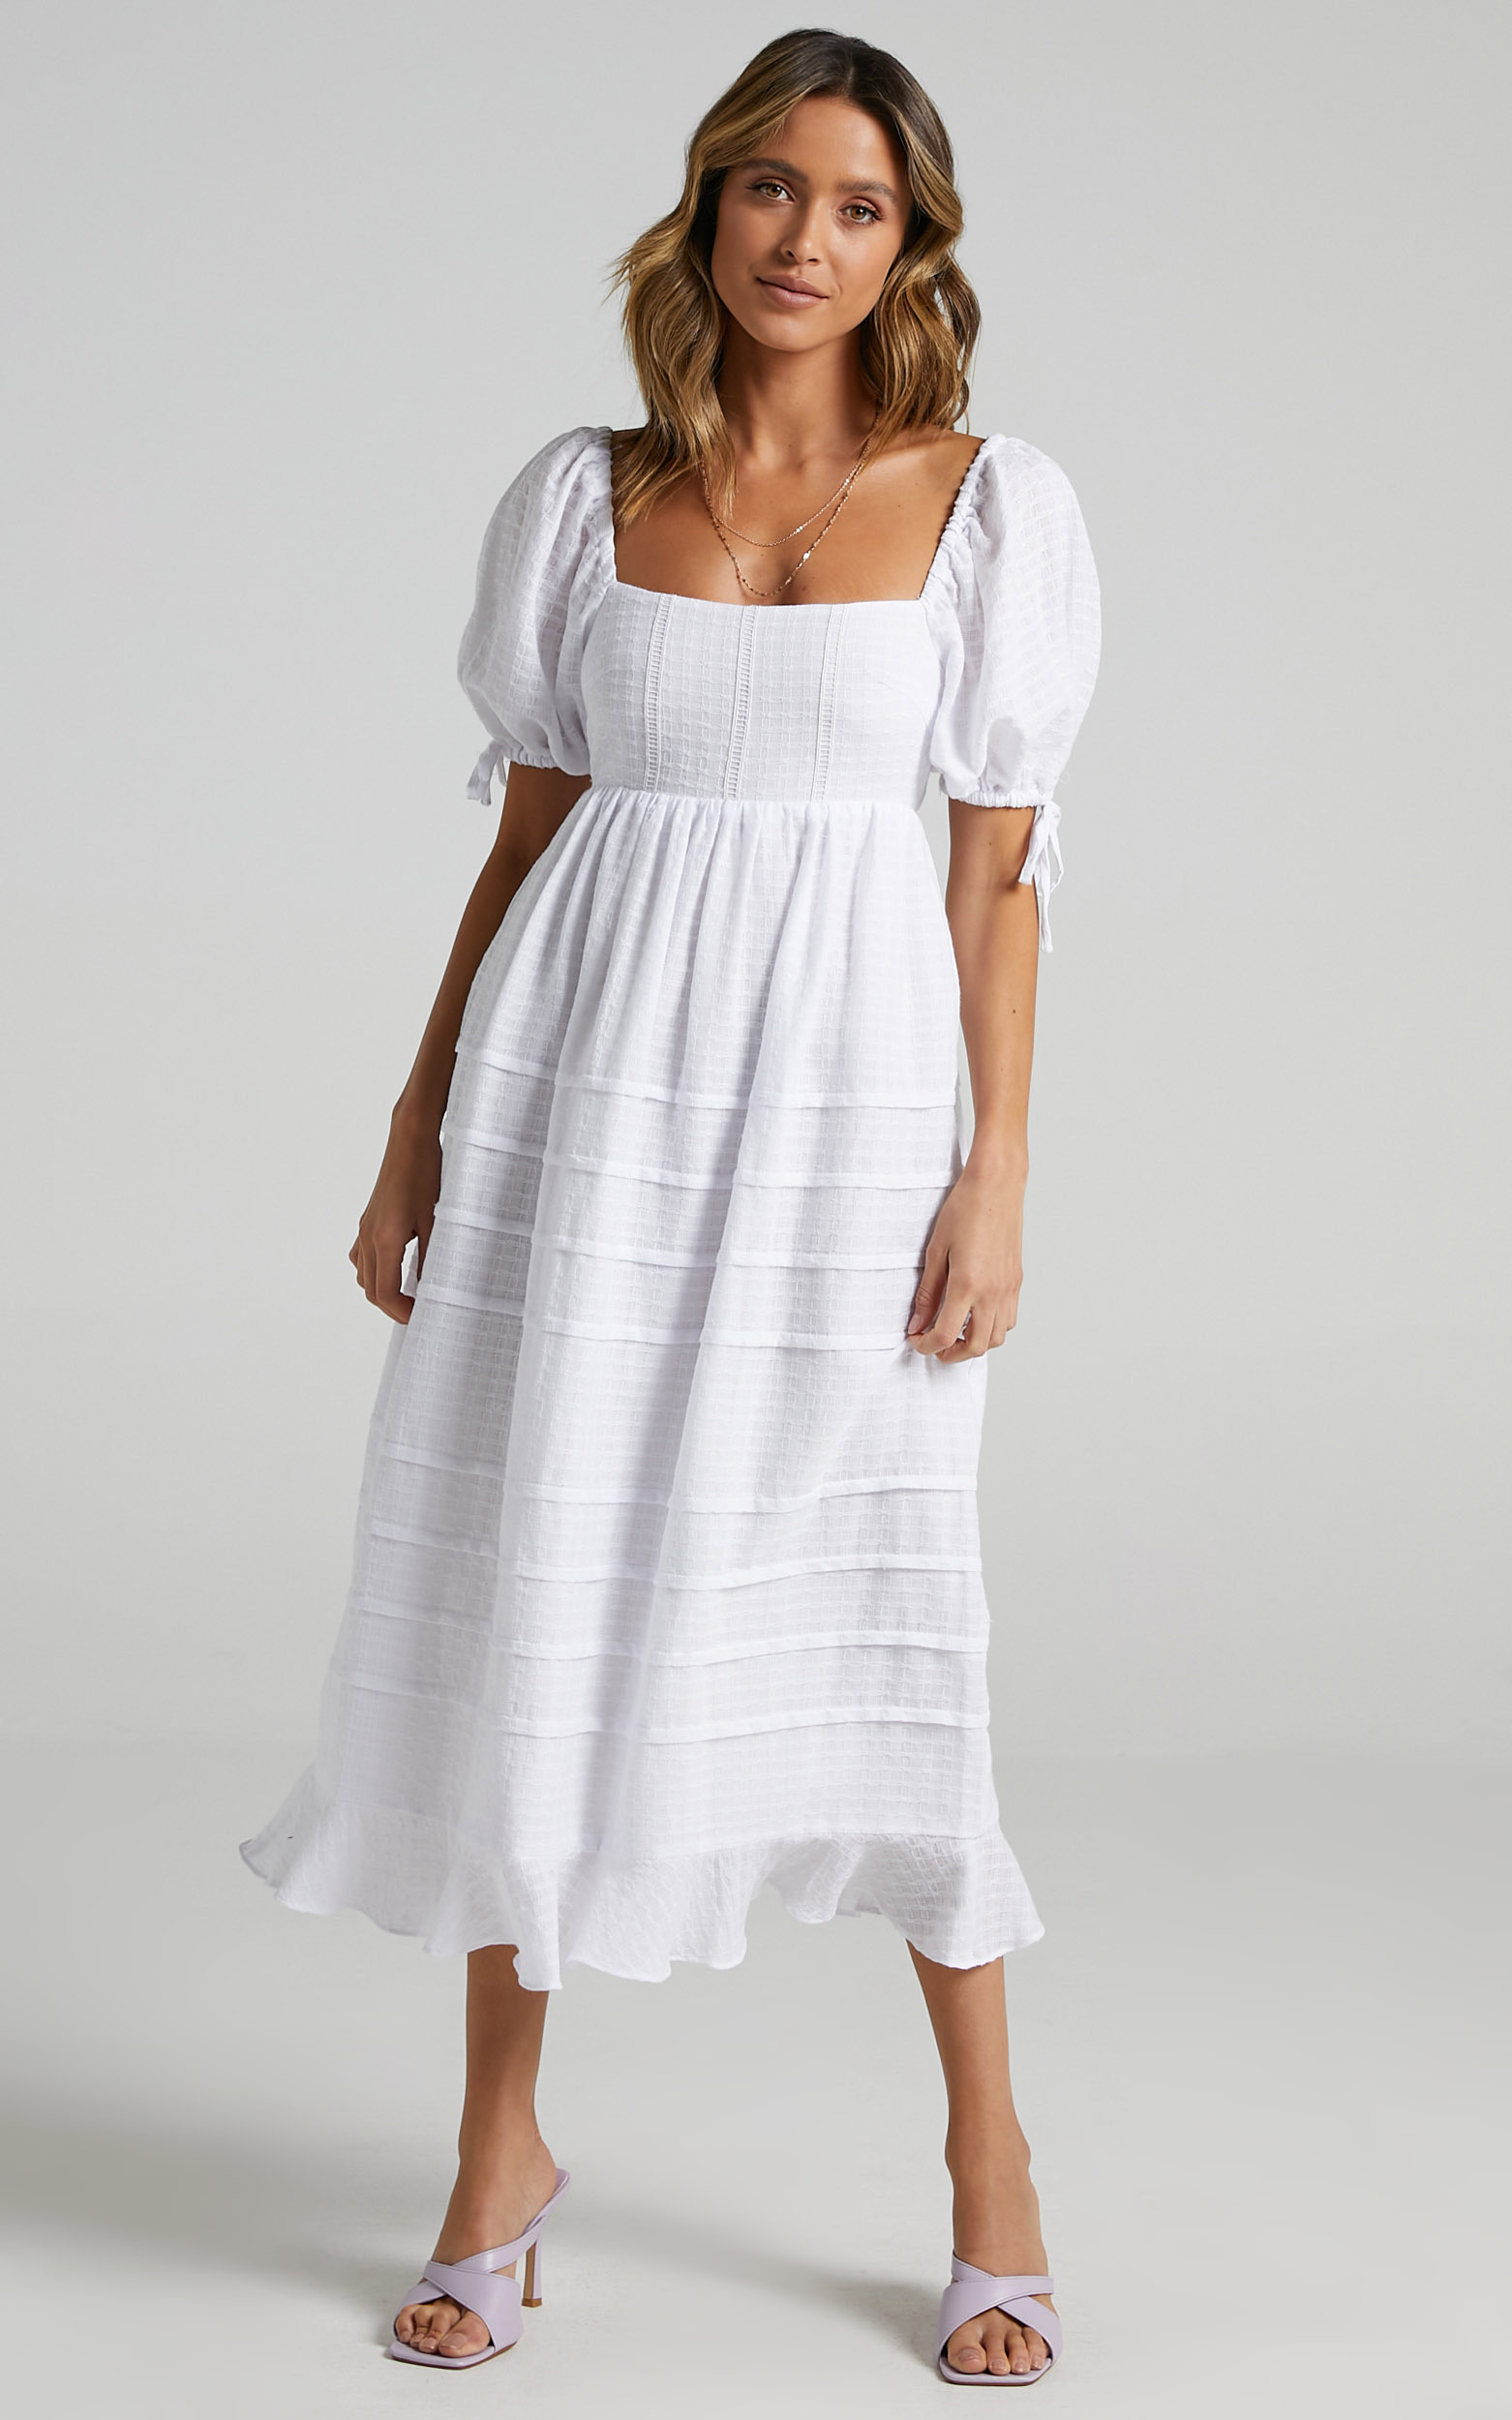 Electra Dress in White - 06, WHT3, hi-res image number null